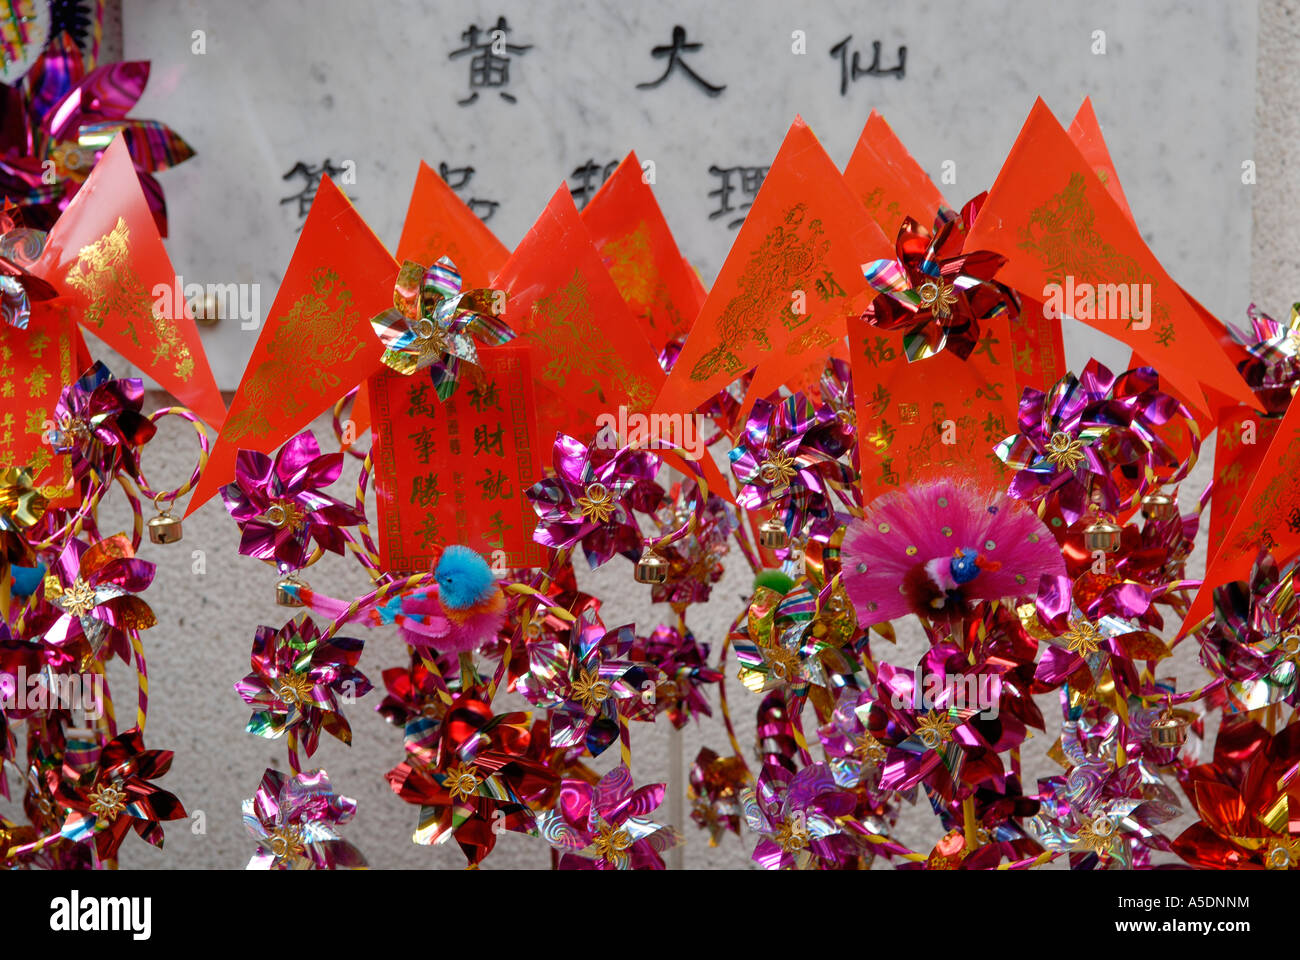 Chinese New Year Prayer Pinwheel Stock Photos   Chinese New Year     Stack of decorated pinwheel with prayer flags used in Lunar Chinese New Year  celebrations  Hong